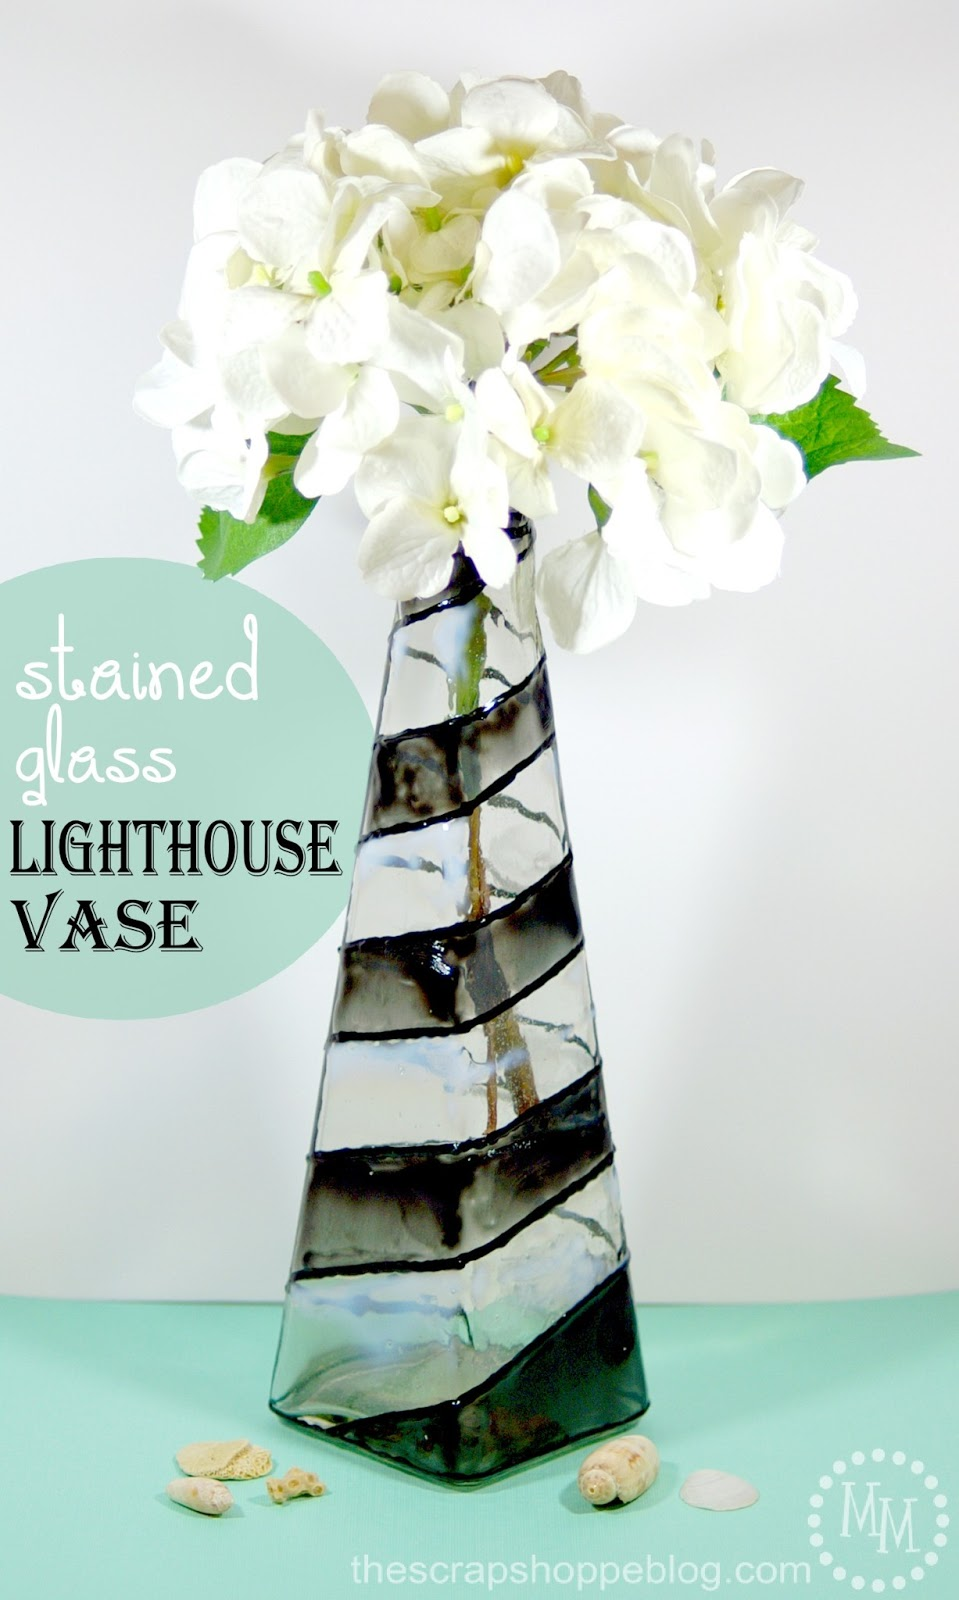 Stained glass lighthouse vase the scrap shoppe im super excited to say ive teamed up with several other bloggers and decoart to give away a 100 michaels gift card 100 worth of decoart glass paint reviewsmspy